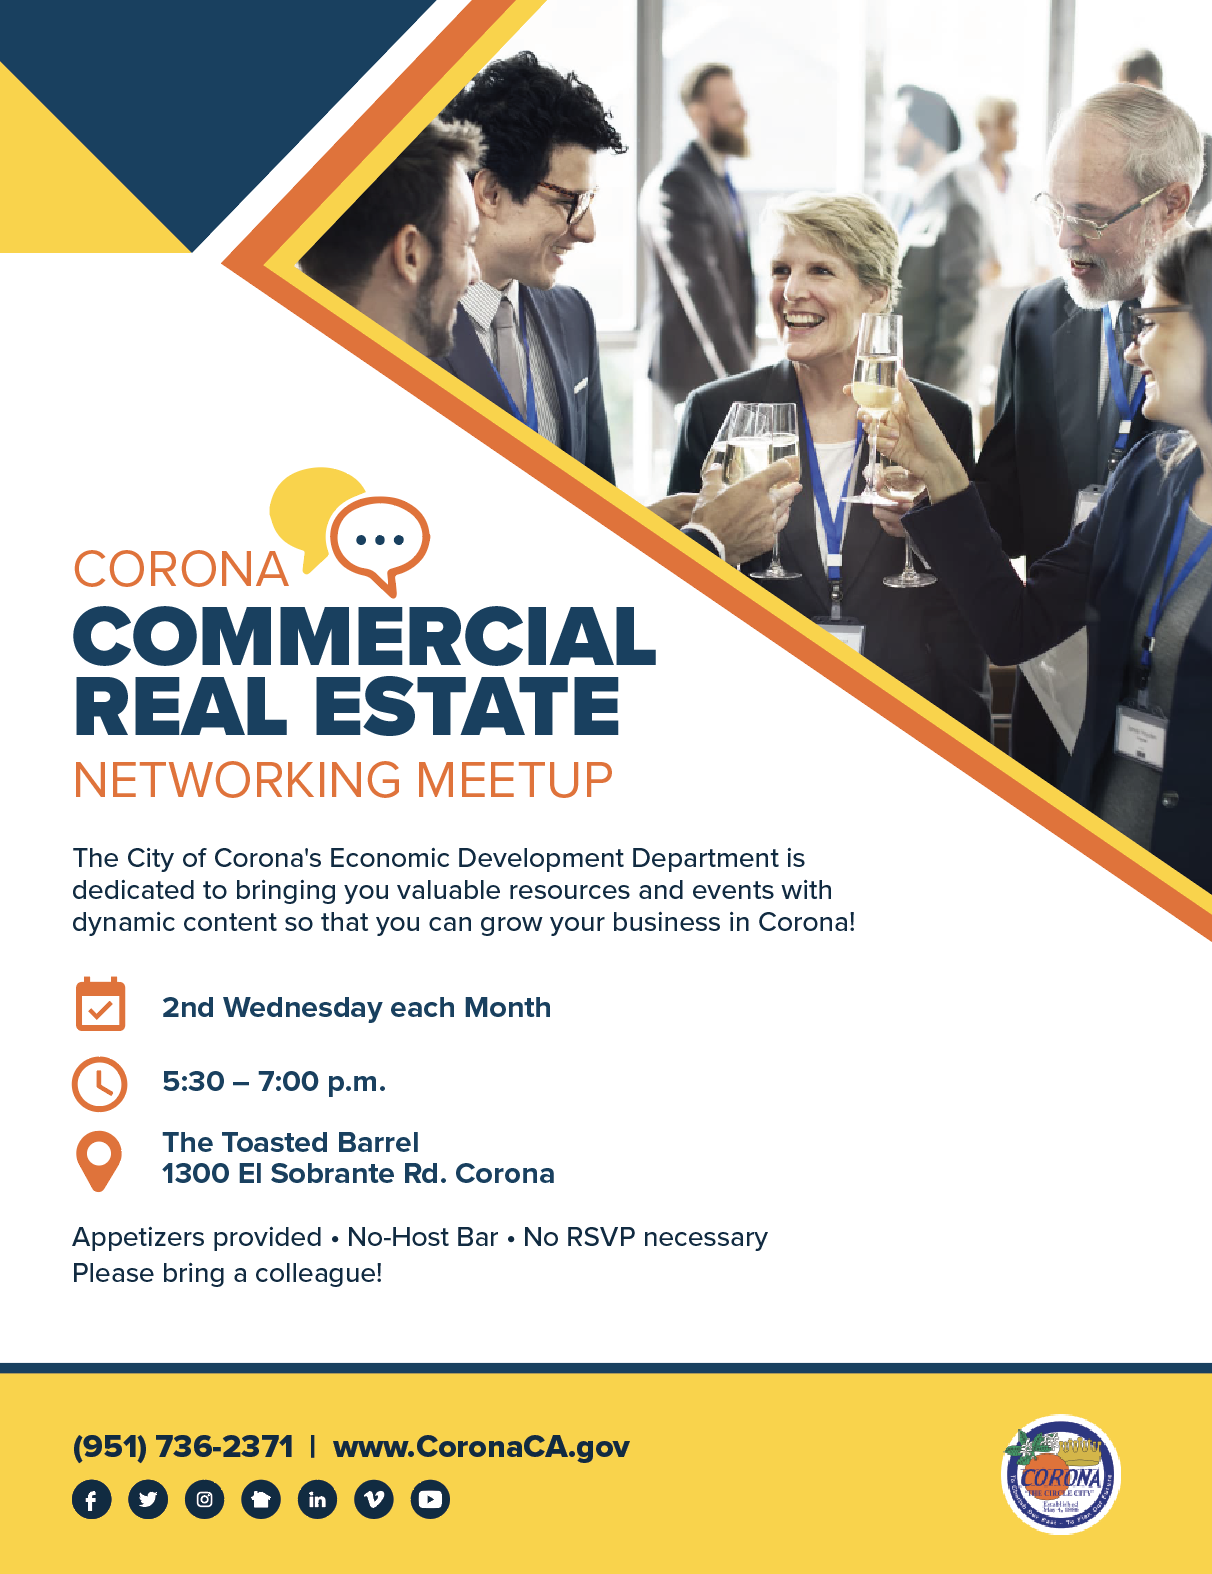 Commercial Real Estate Mixer